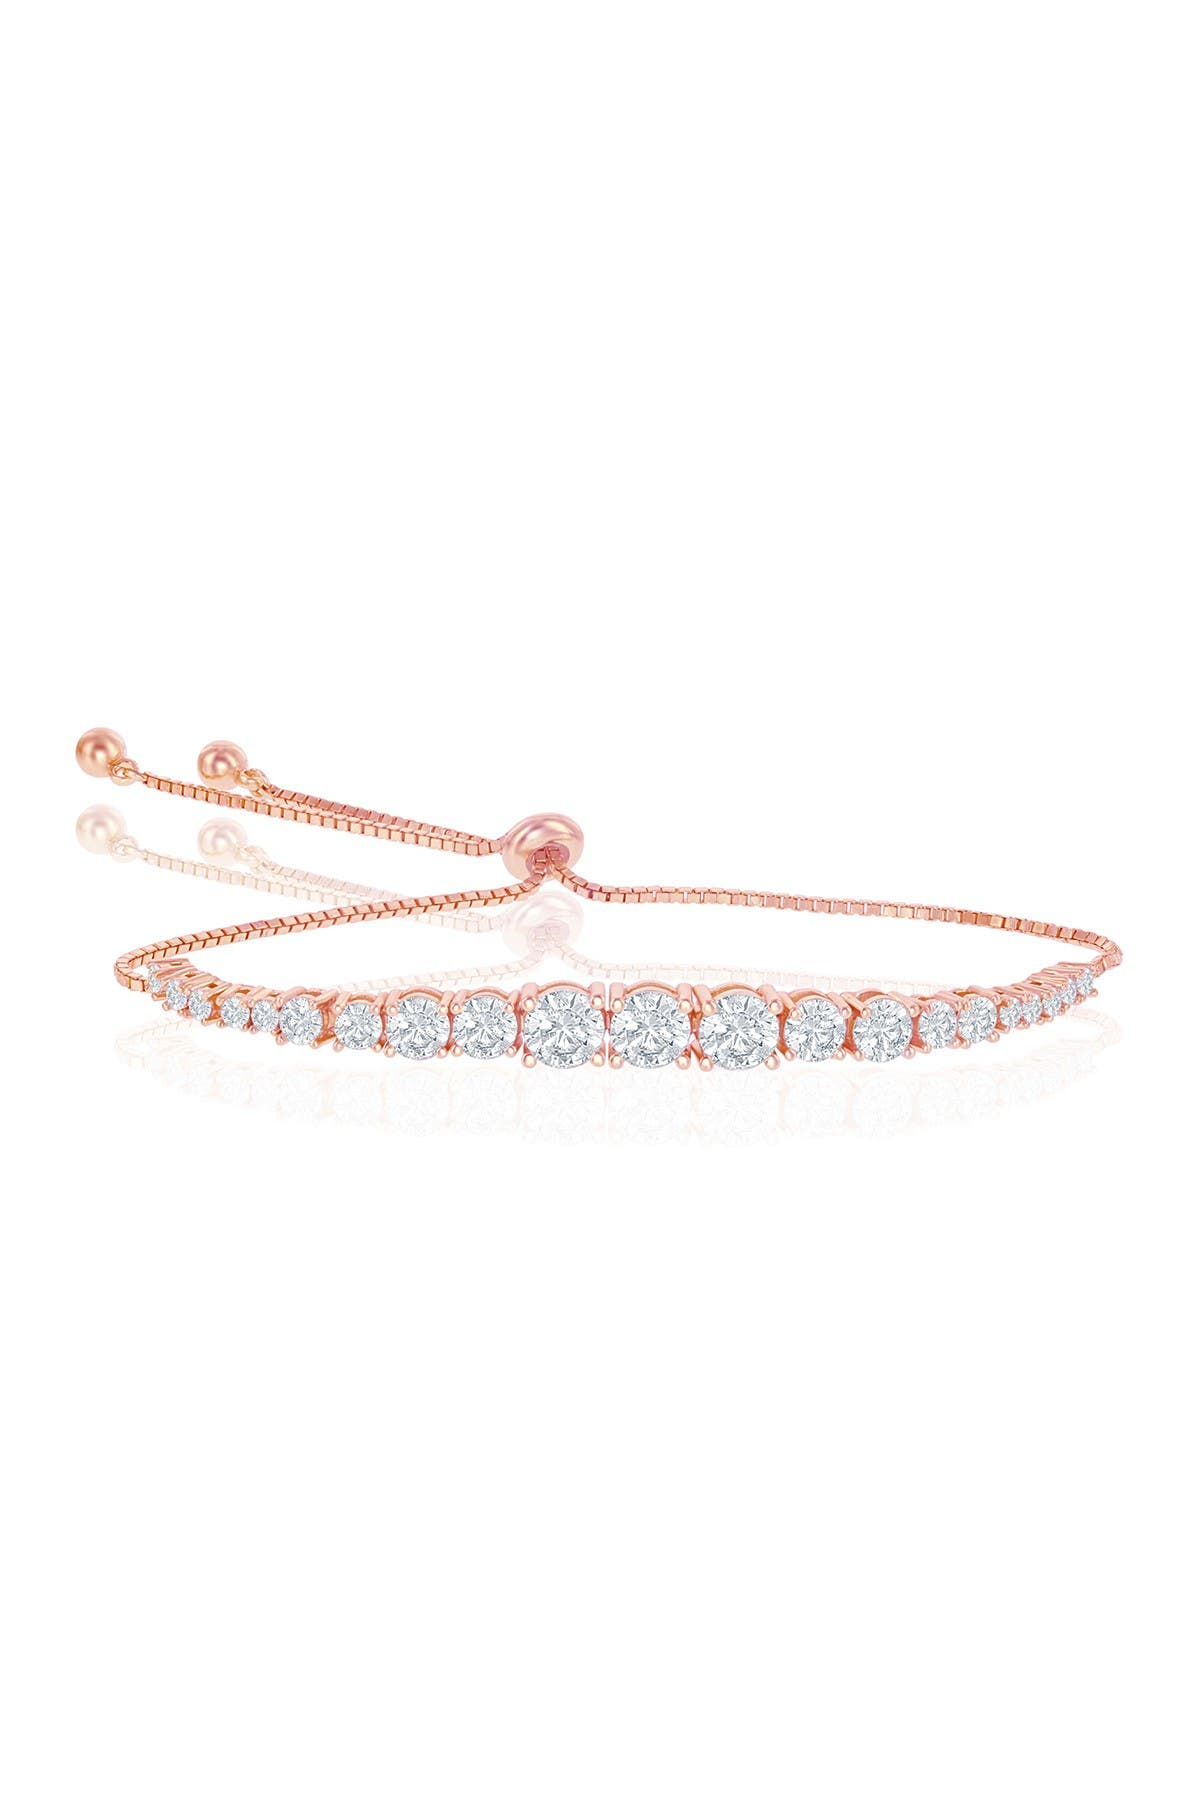 Image of Simona Jewelry 14K Rose Gold Plated Sterling Silver Graduated CZ Tennis Bracelet